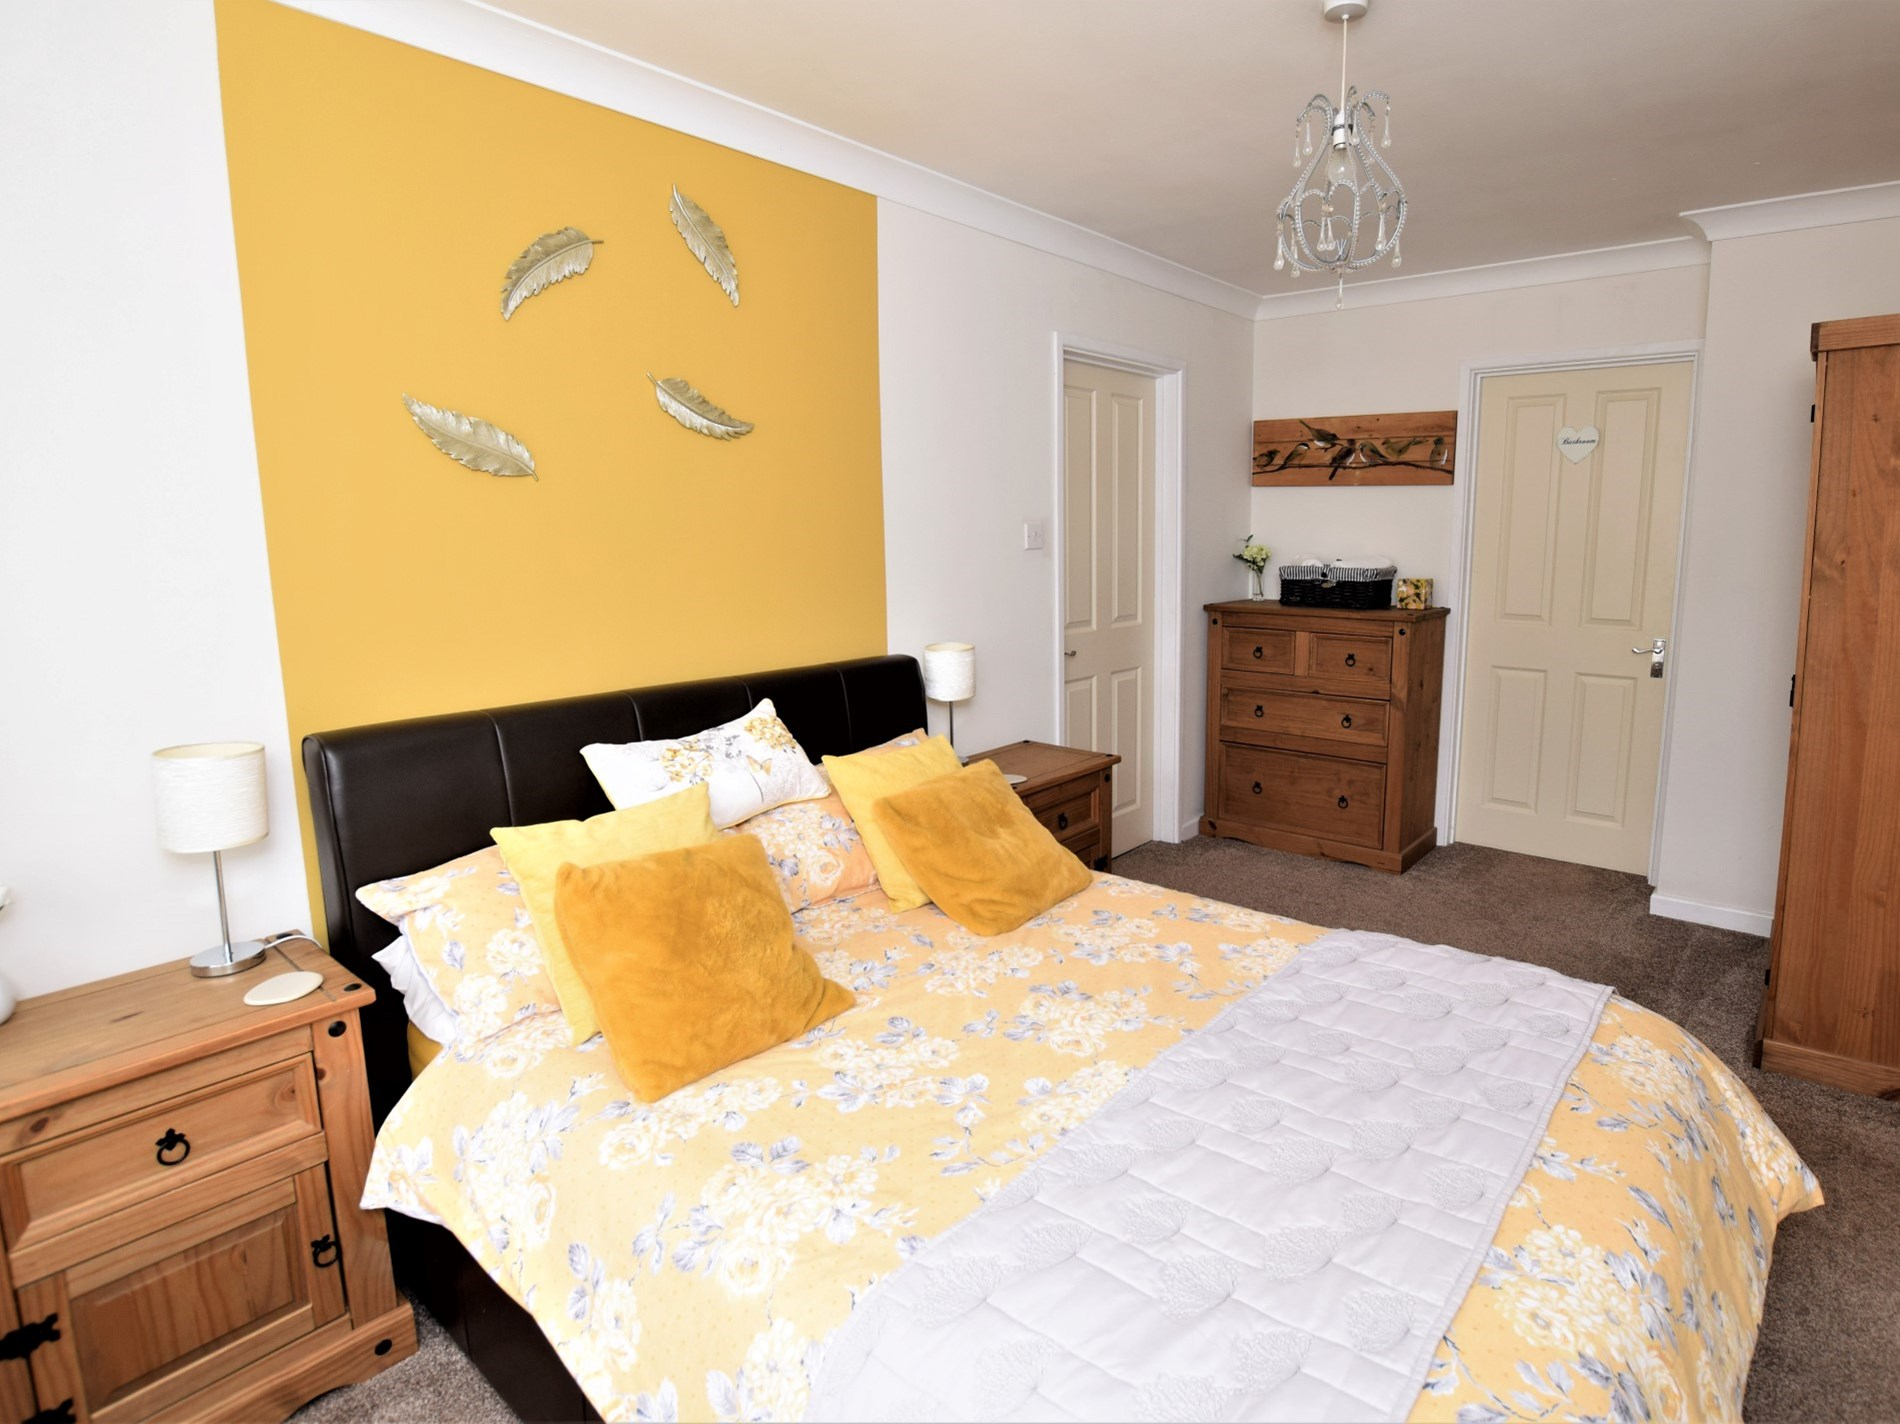 1 Bedroom Cottage in Fordingbridge, South of England